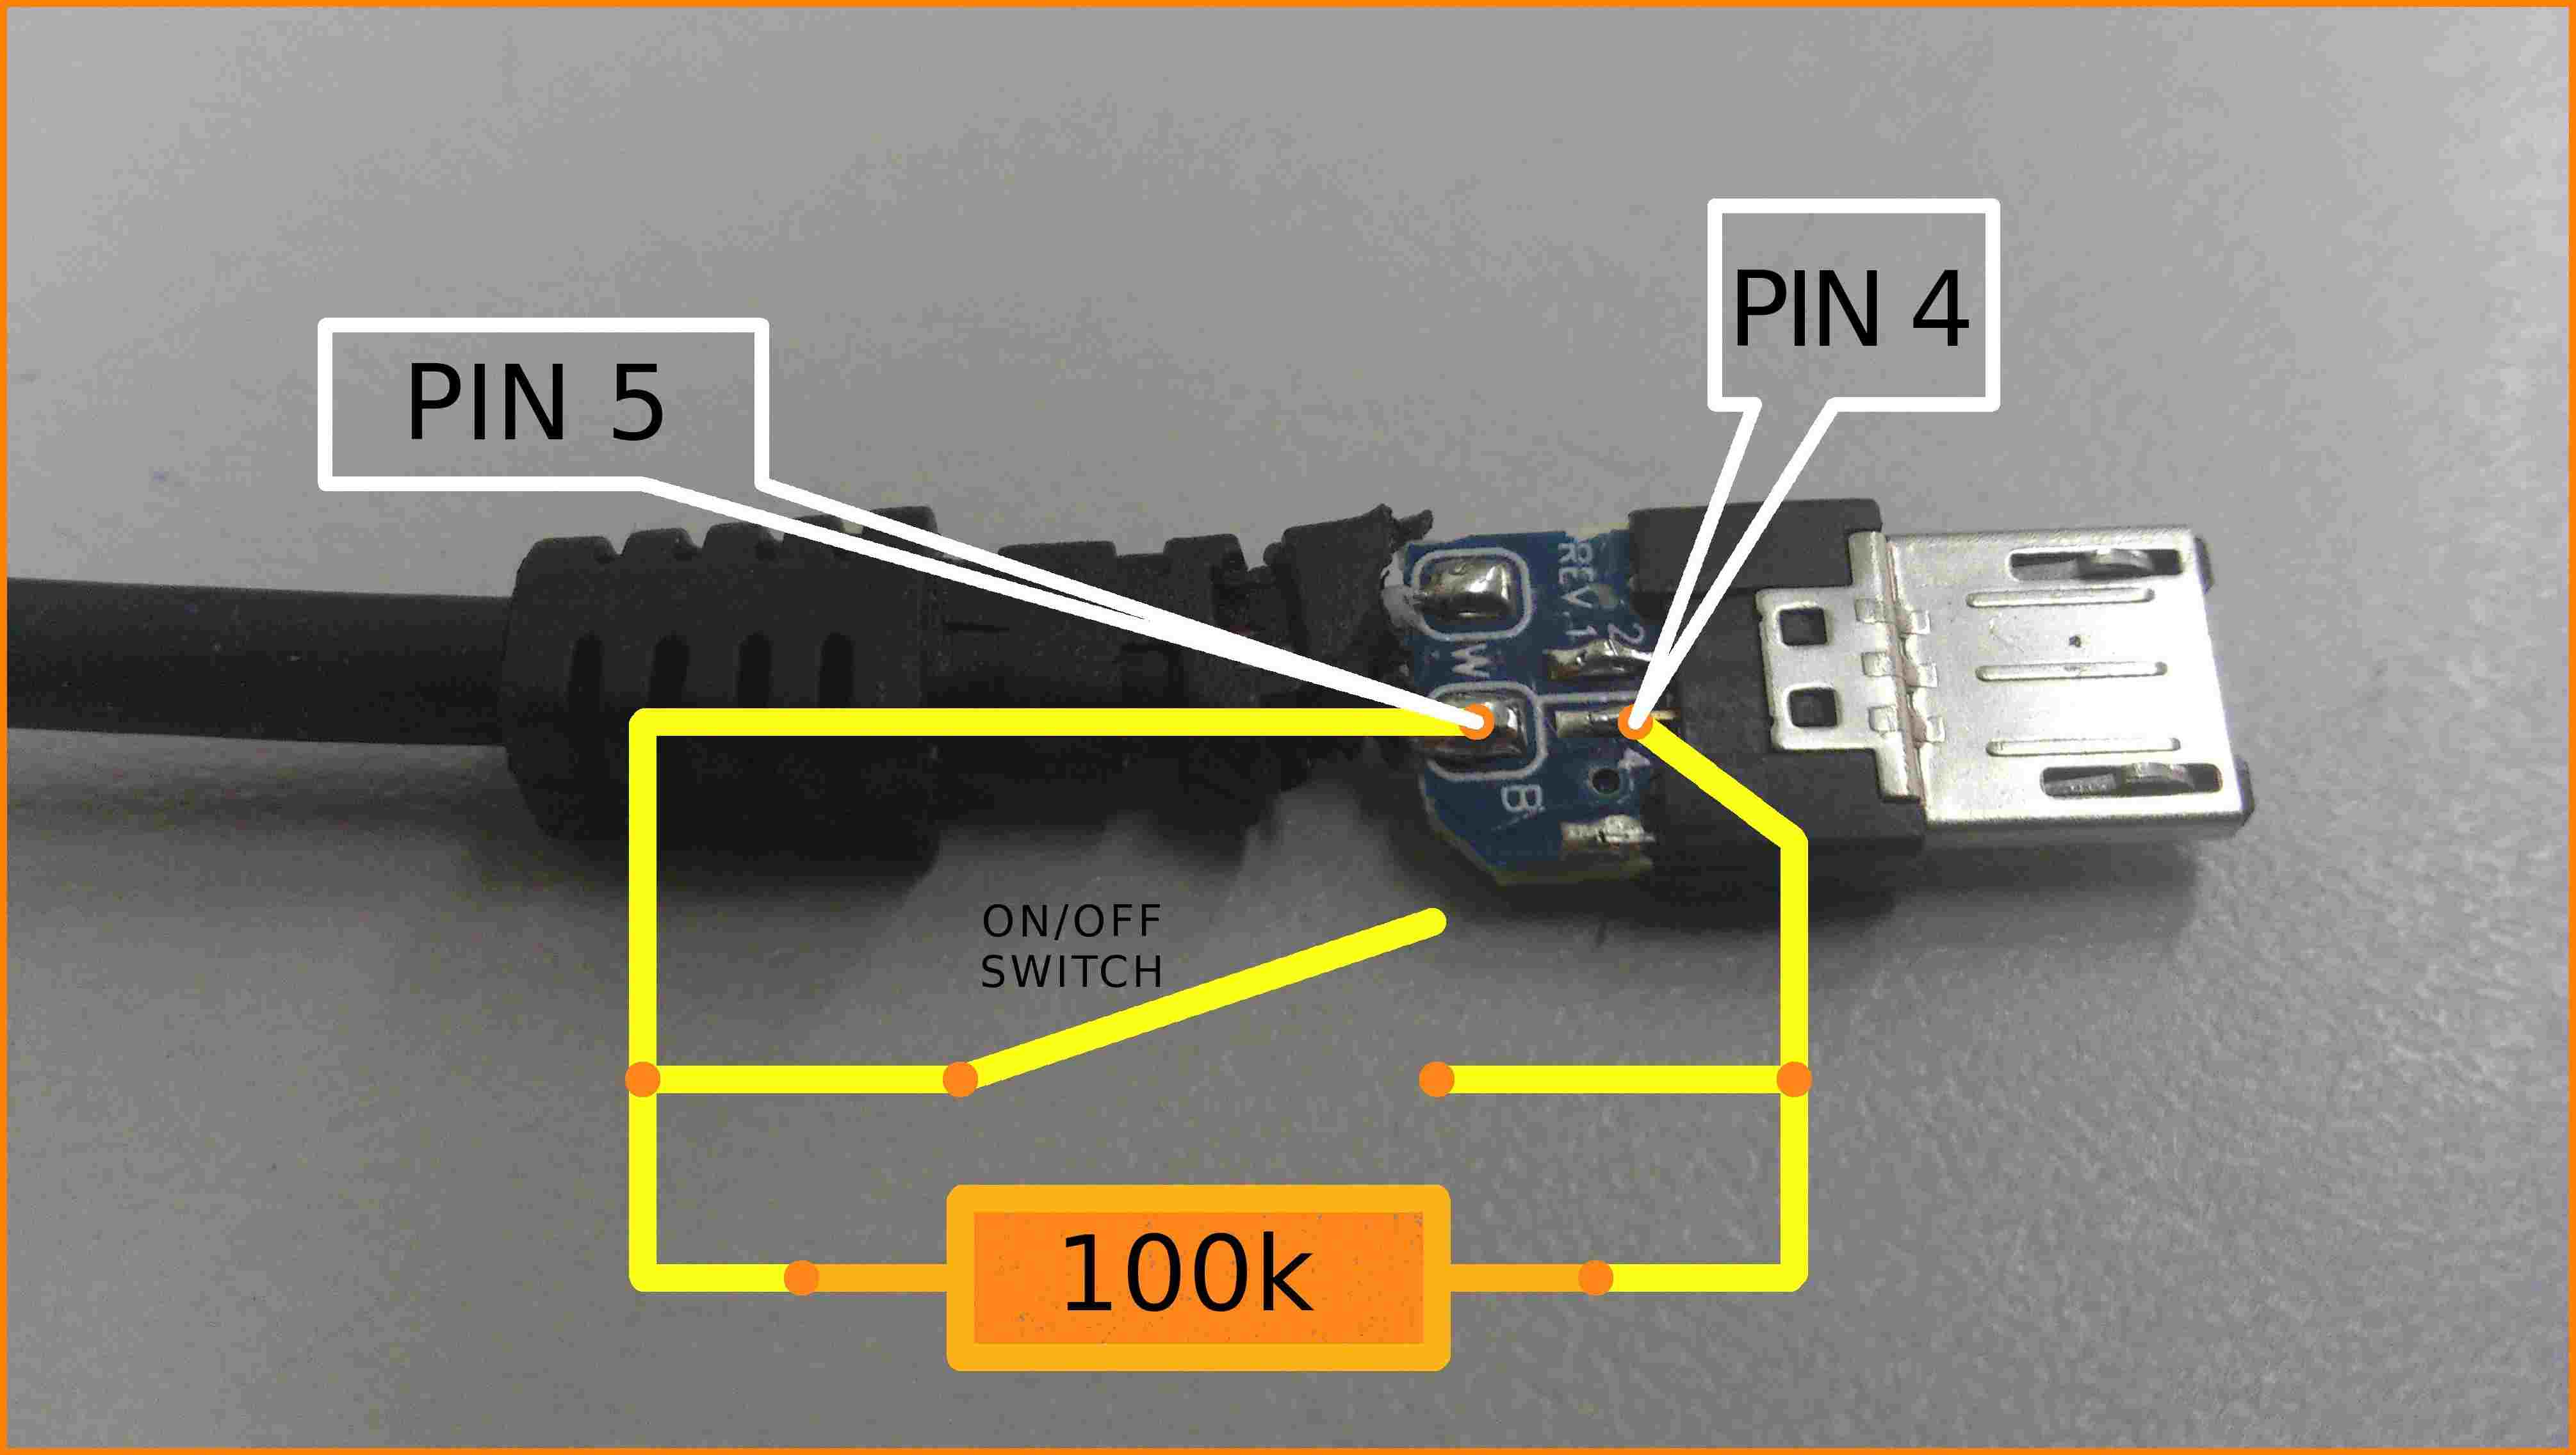 Phone Charger Wire Diagram | Wiring Library - Micro Usb Data Charging Cable Wiring Diagram